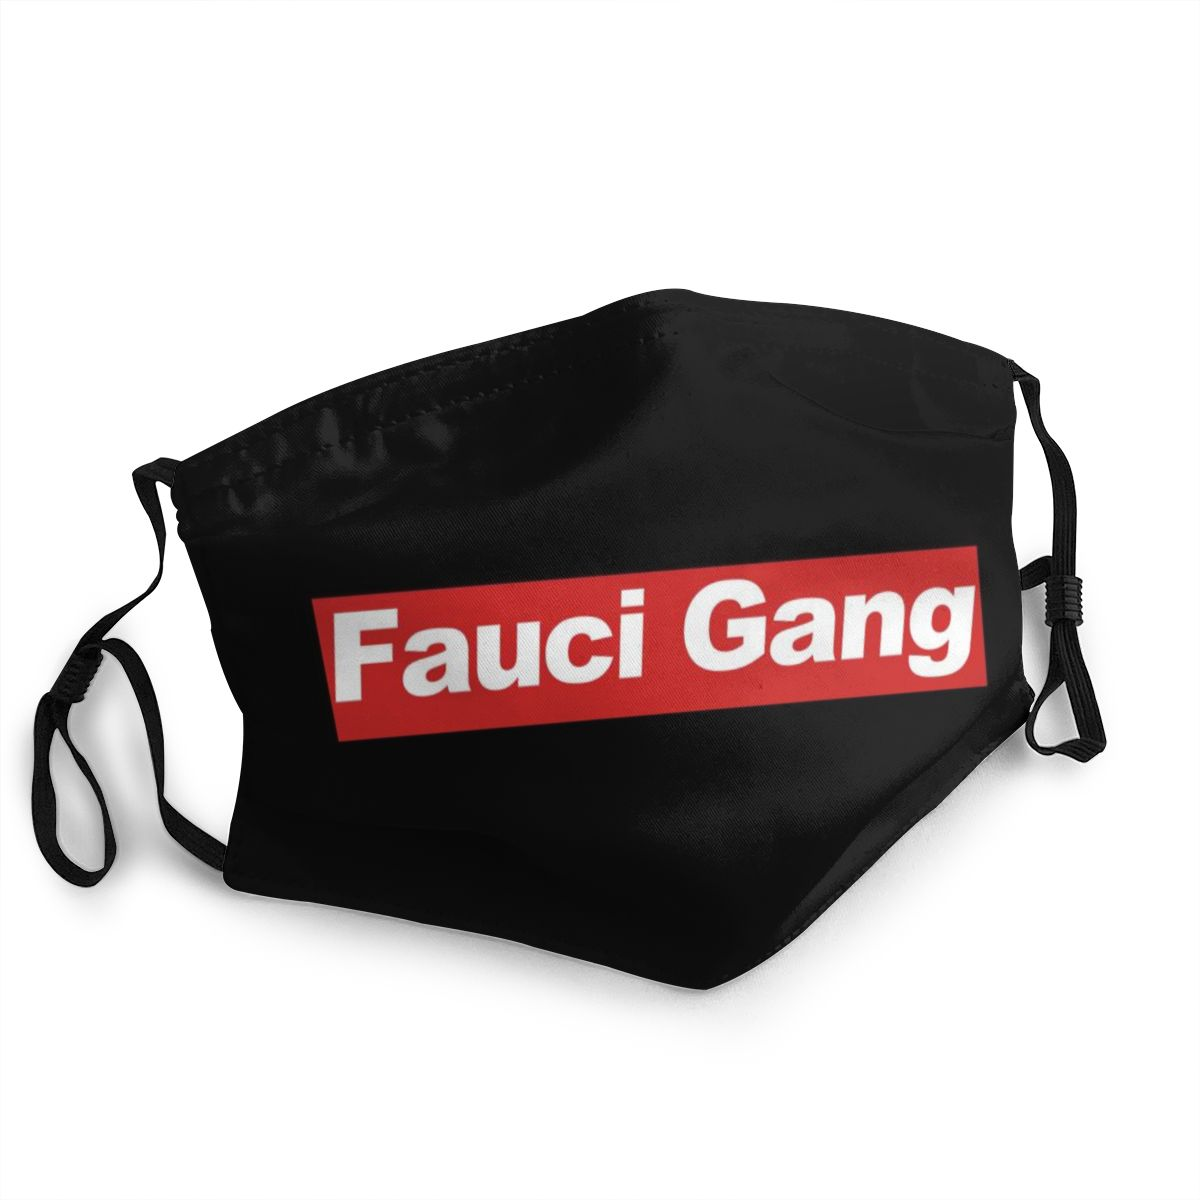 Fauci Gang United States USA Reusable Face Mask Anti Bacterial Dust Protection Cover Respirator